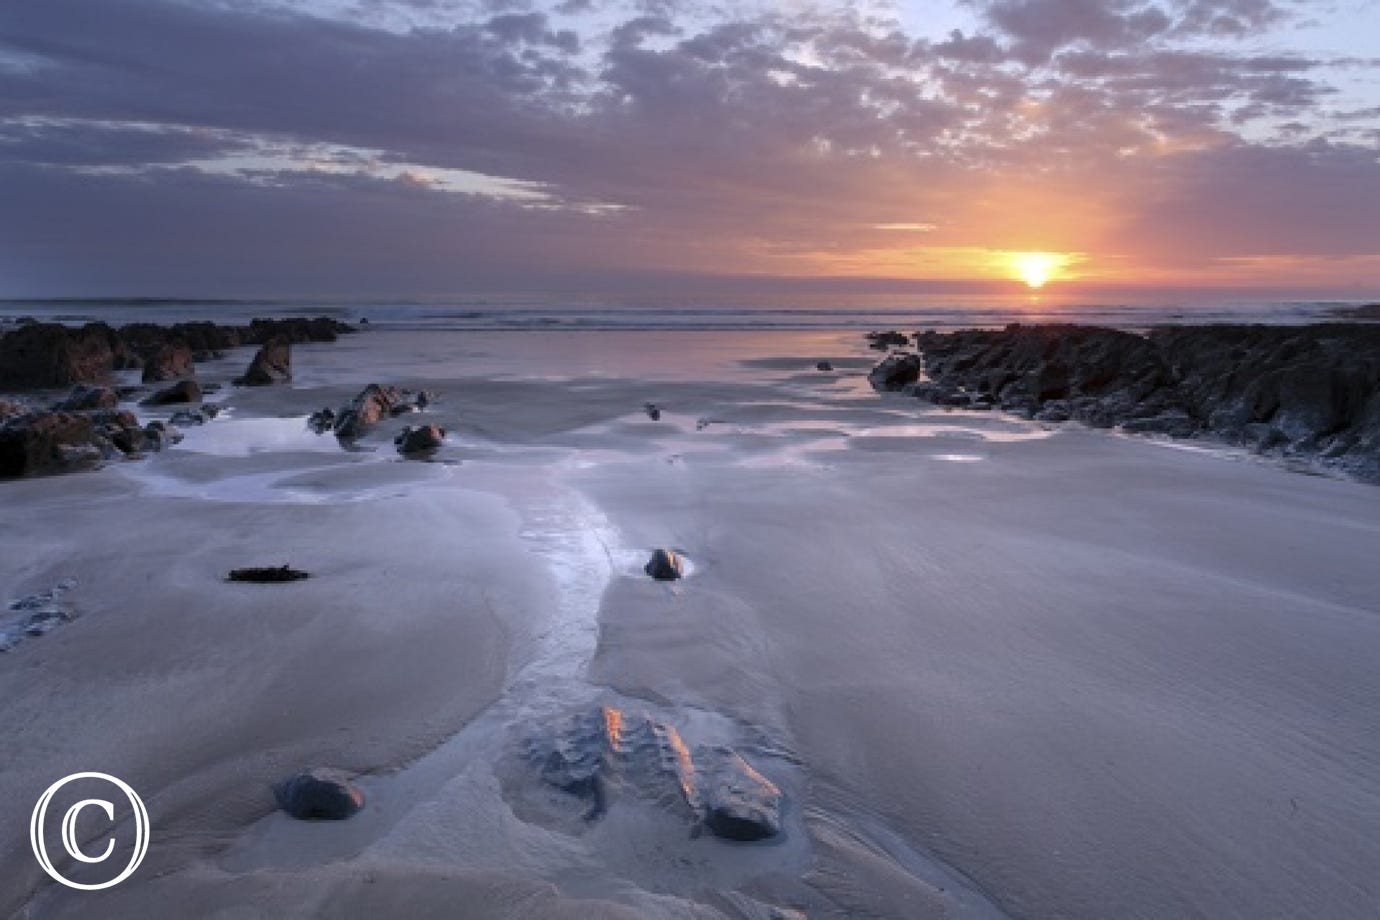 Enjoy an evening sunset walk on beautiful Woolacombe beach